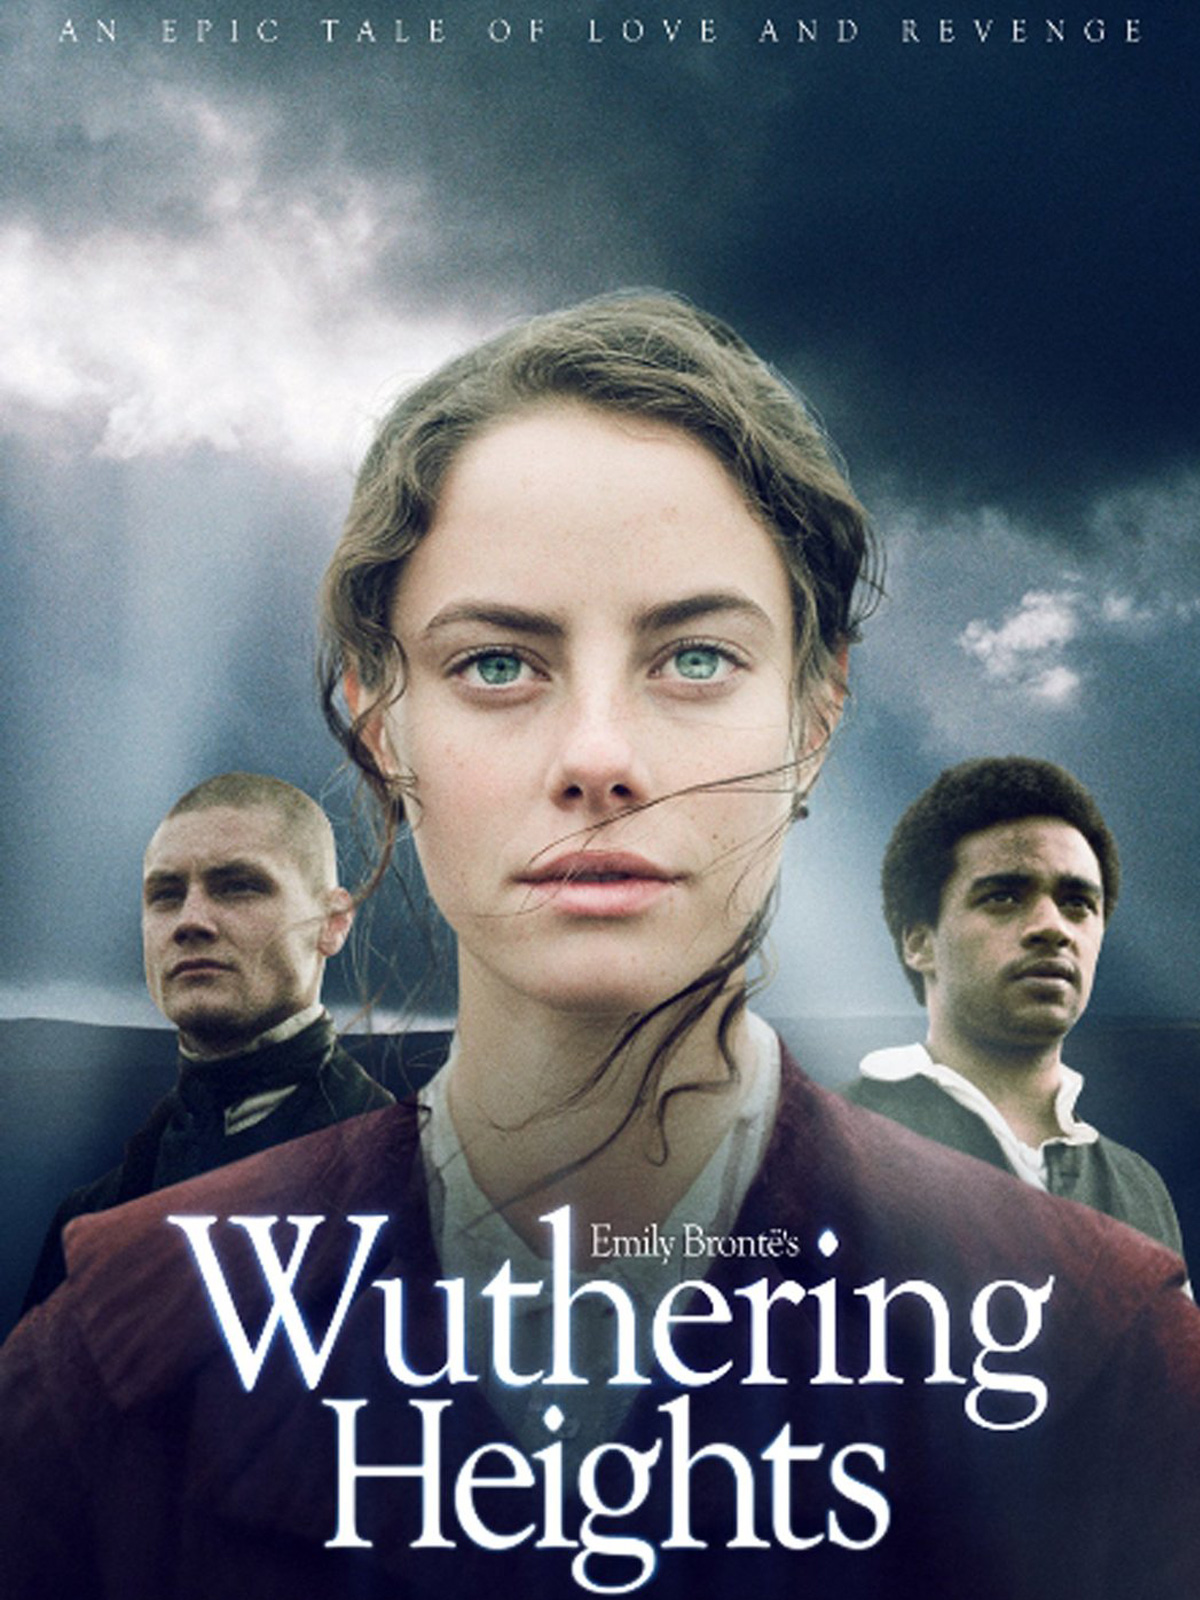 Wuthering Heights Film 2009